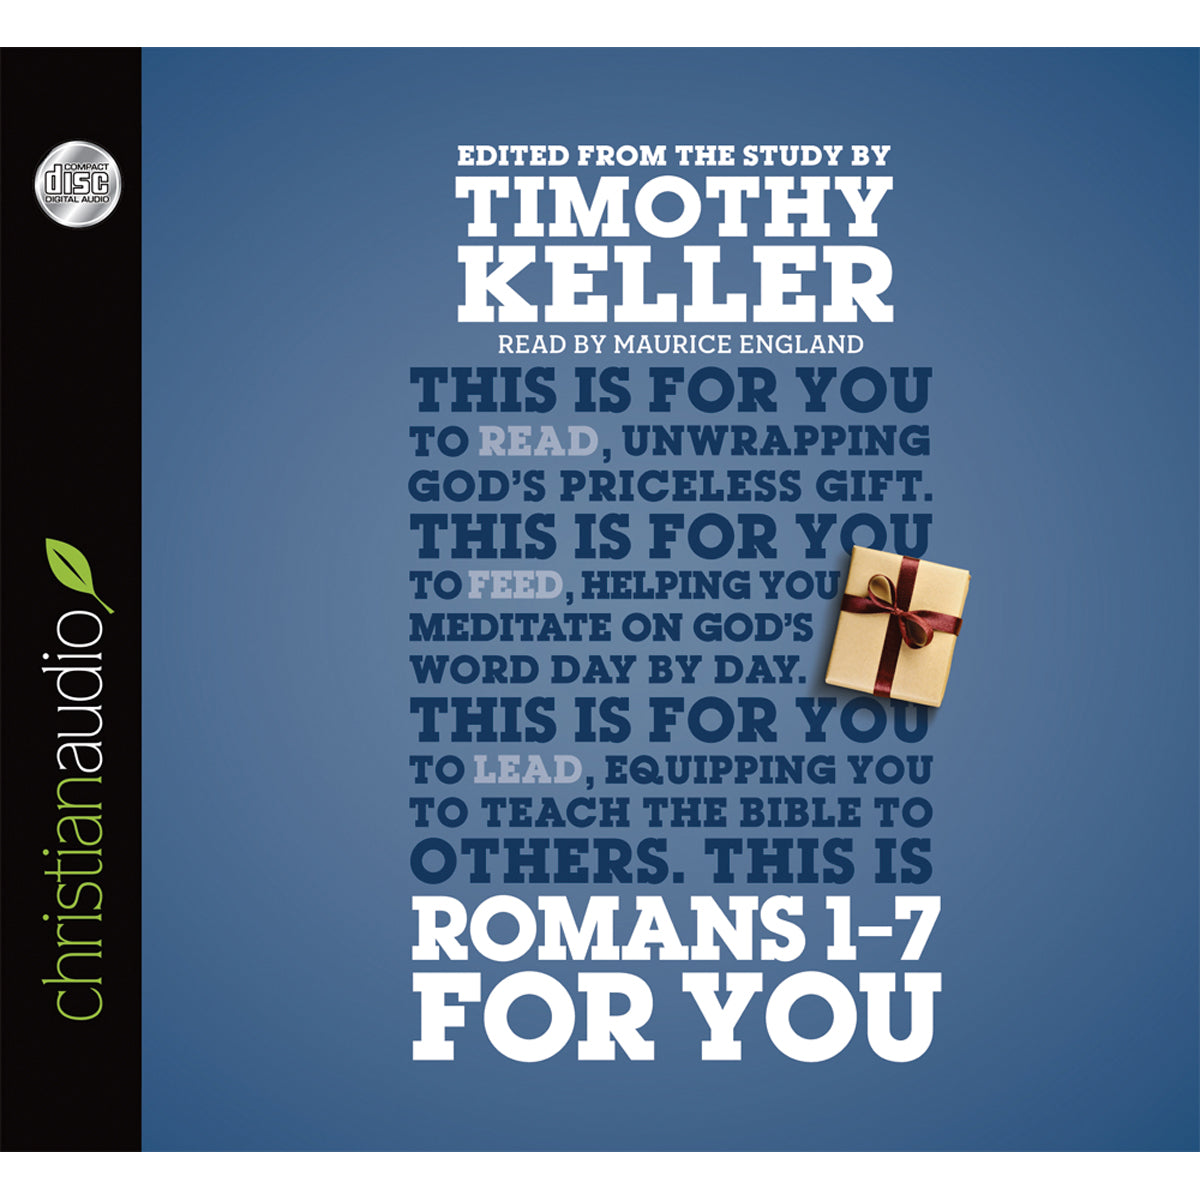 Romans 1-7 For You (Unabridged)(Audio CD)